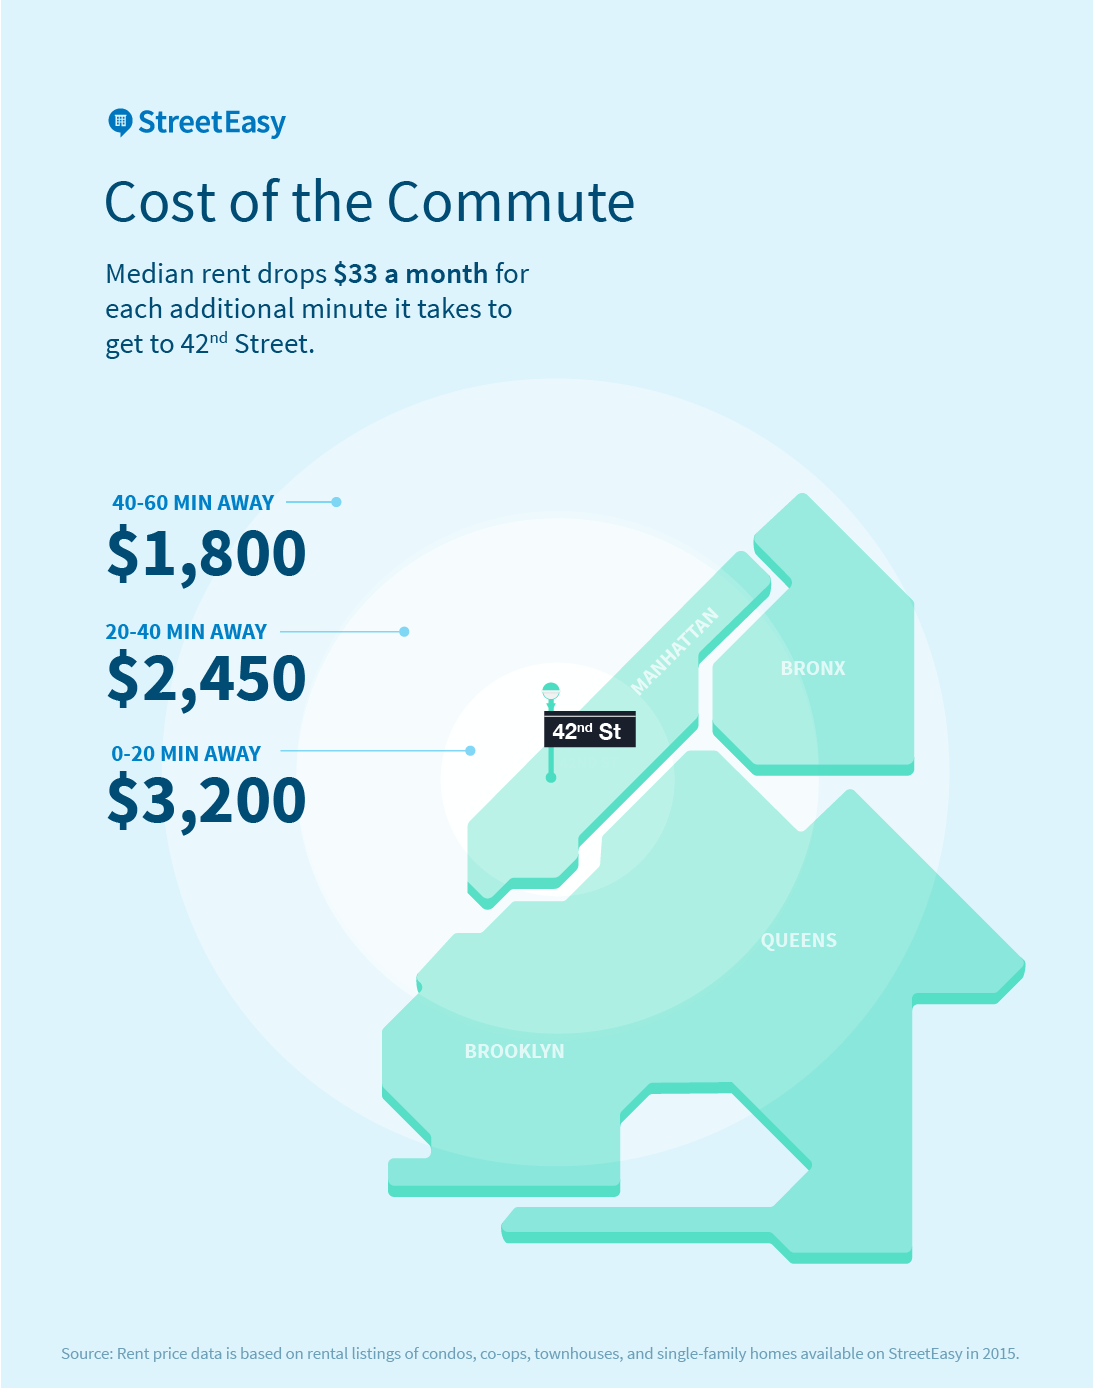 Cost of the Commute